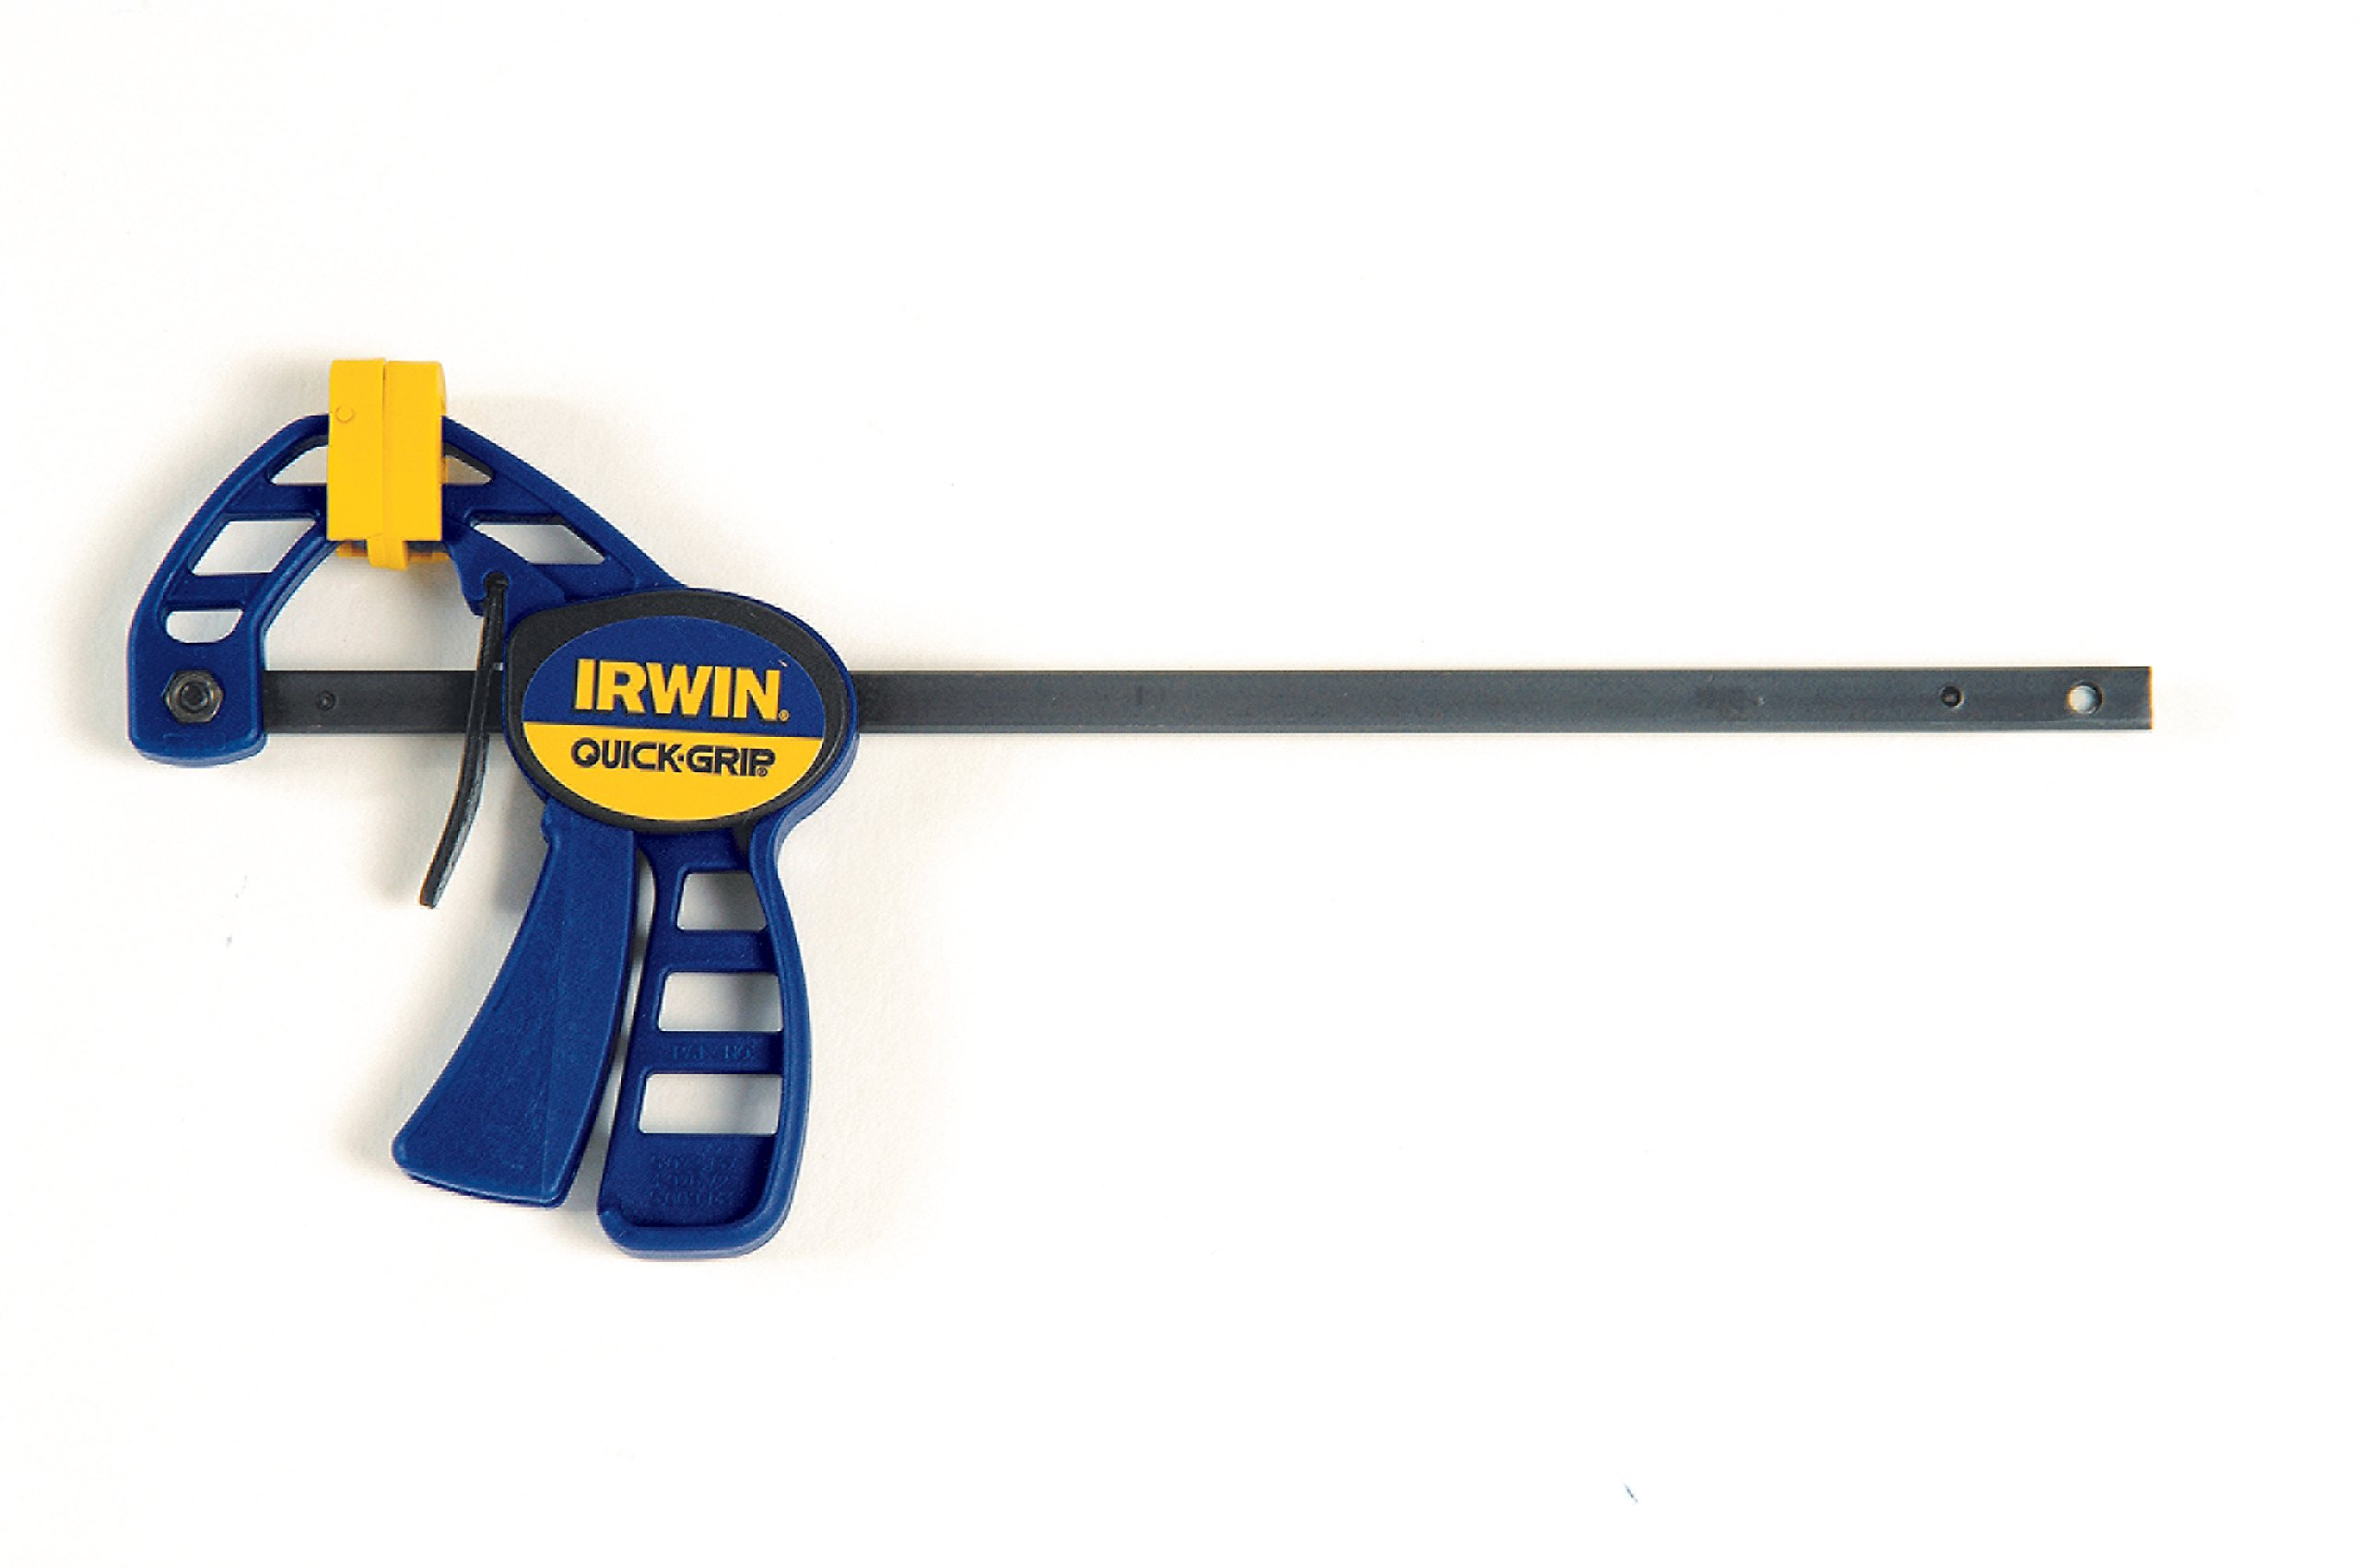 "IRWIN QUICK-GRIP One-Handed Micro Bar Clamp, 4-1/4"", 1964746"